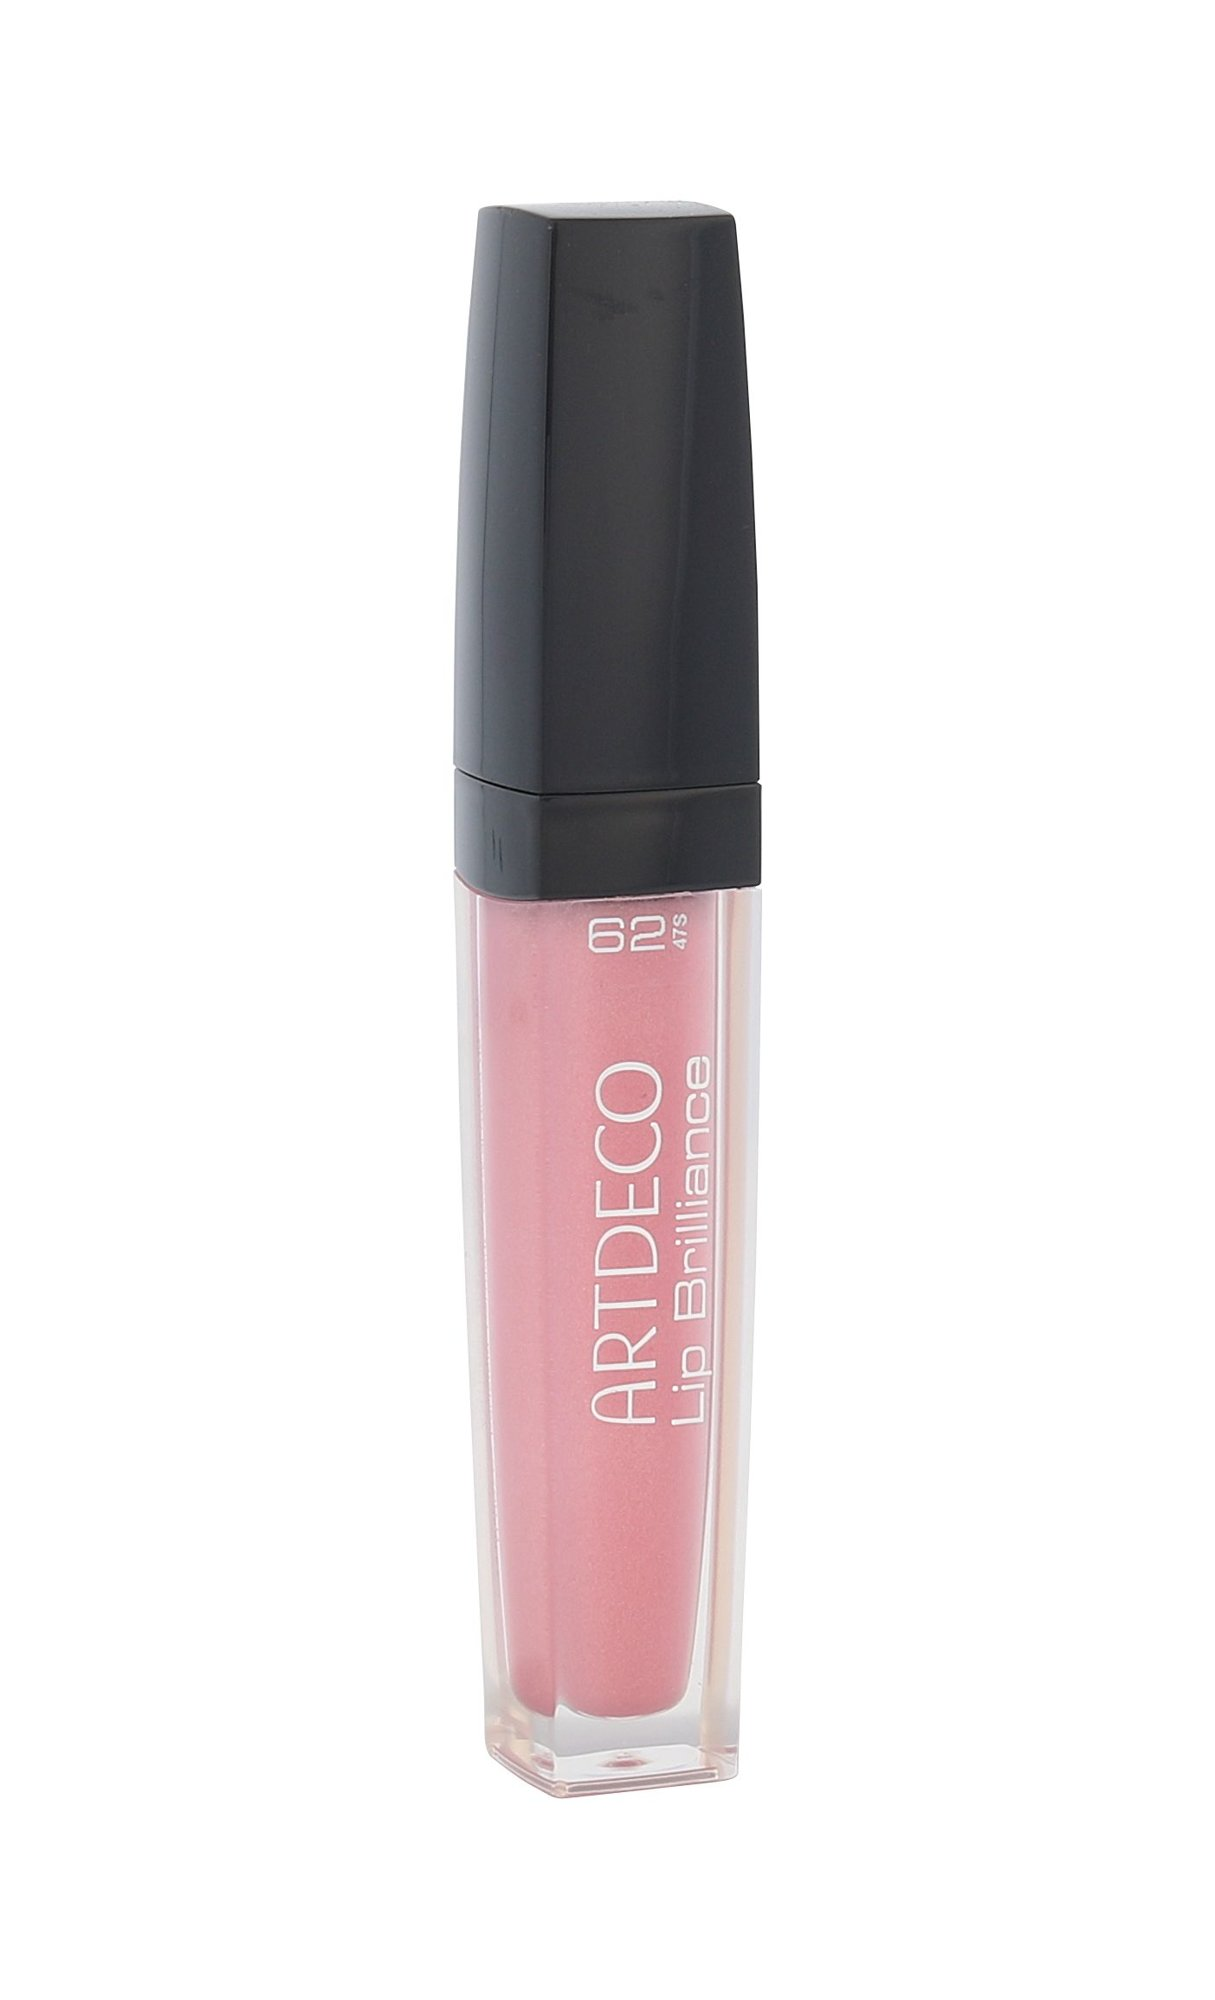 Artdeco Lip Brilliance Cosmetic 5ml 62 Brilliant Soft Pink